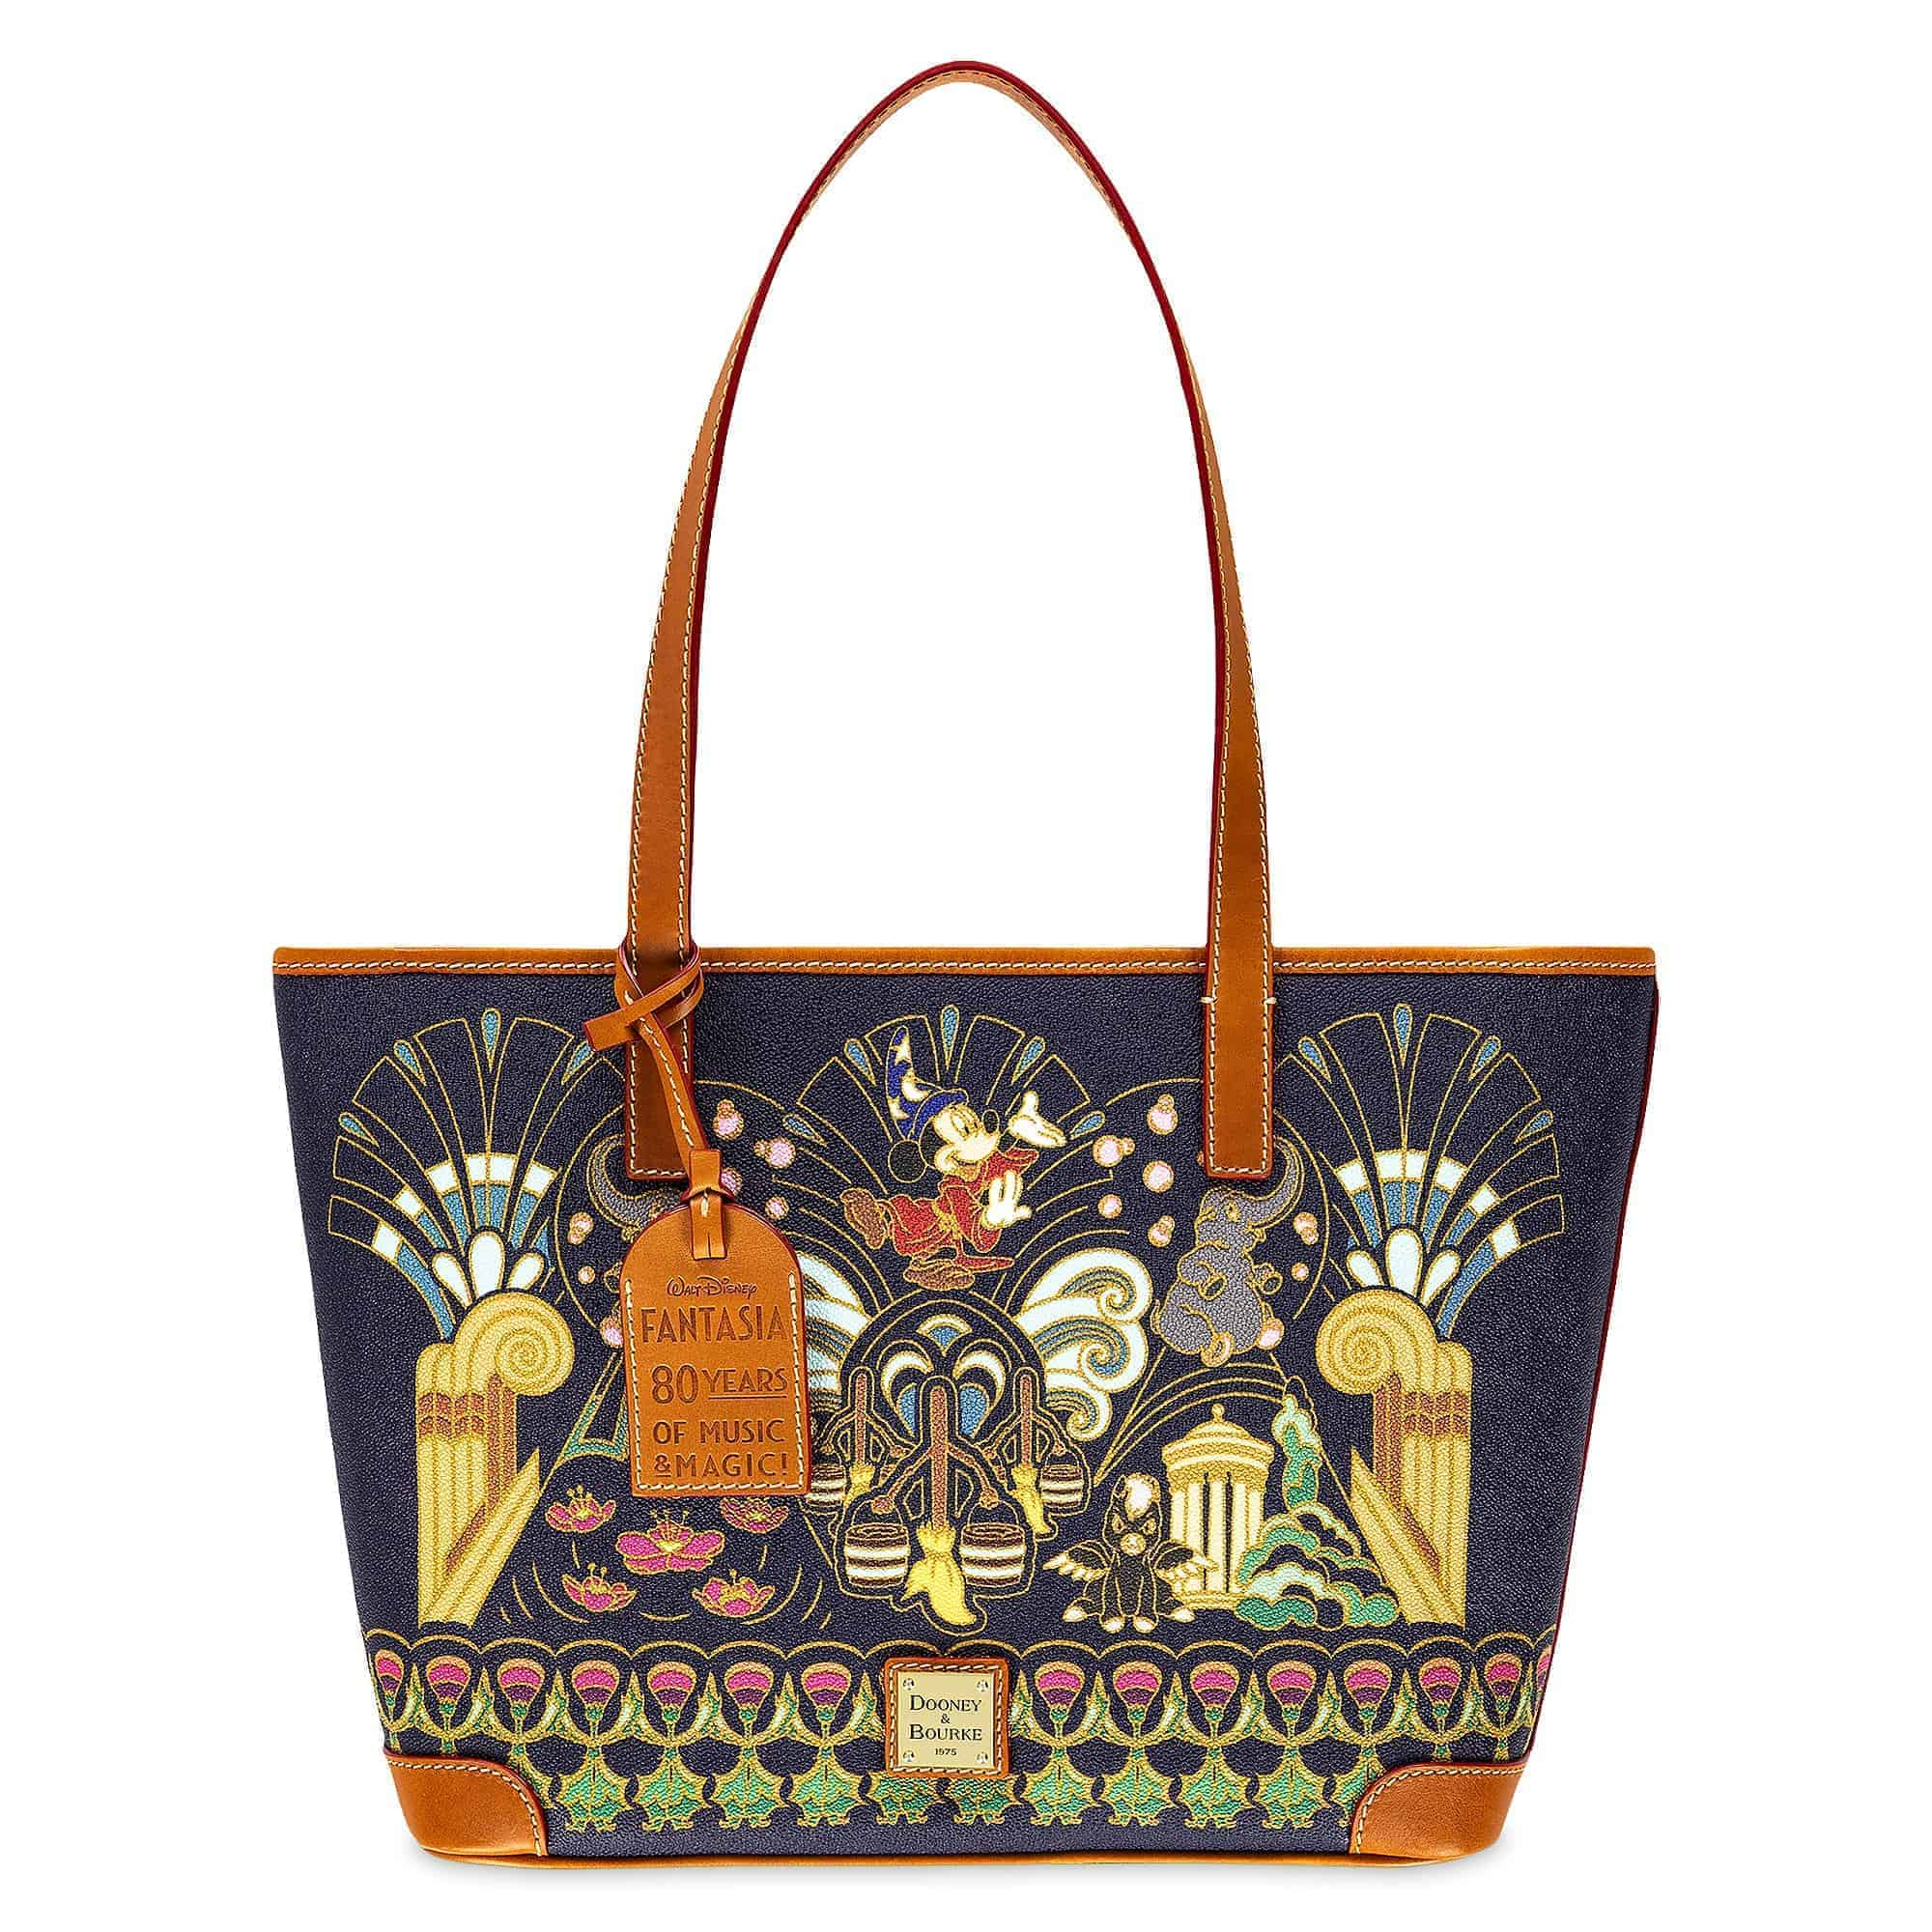 Fantasia 80th Anniversary Tote by Dooney & Bourke